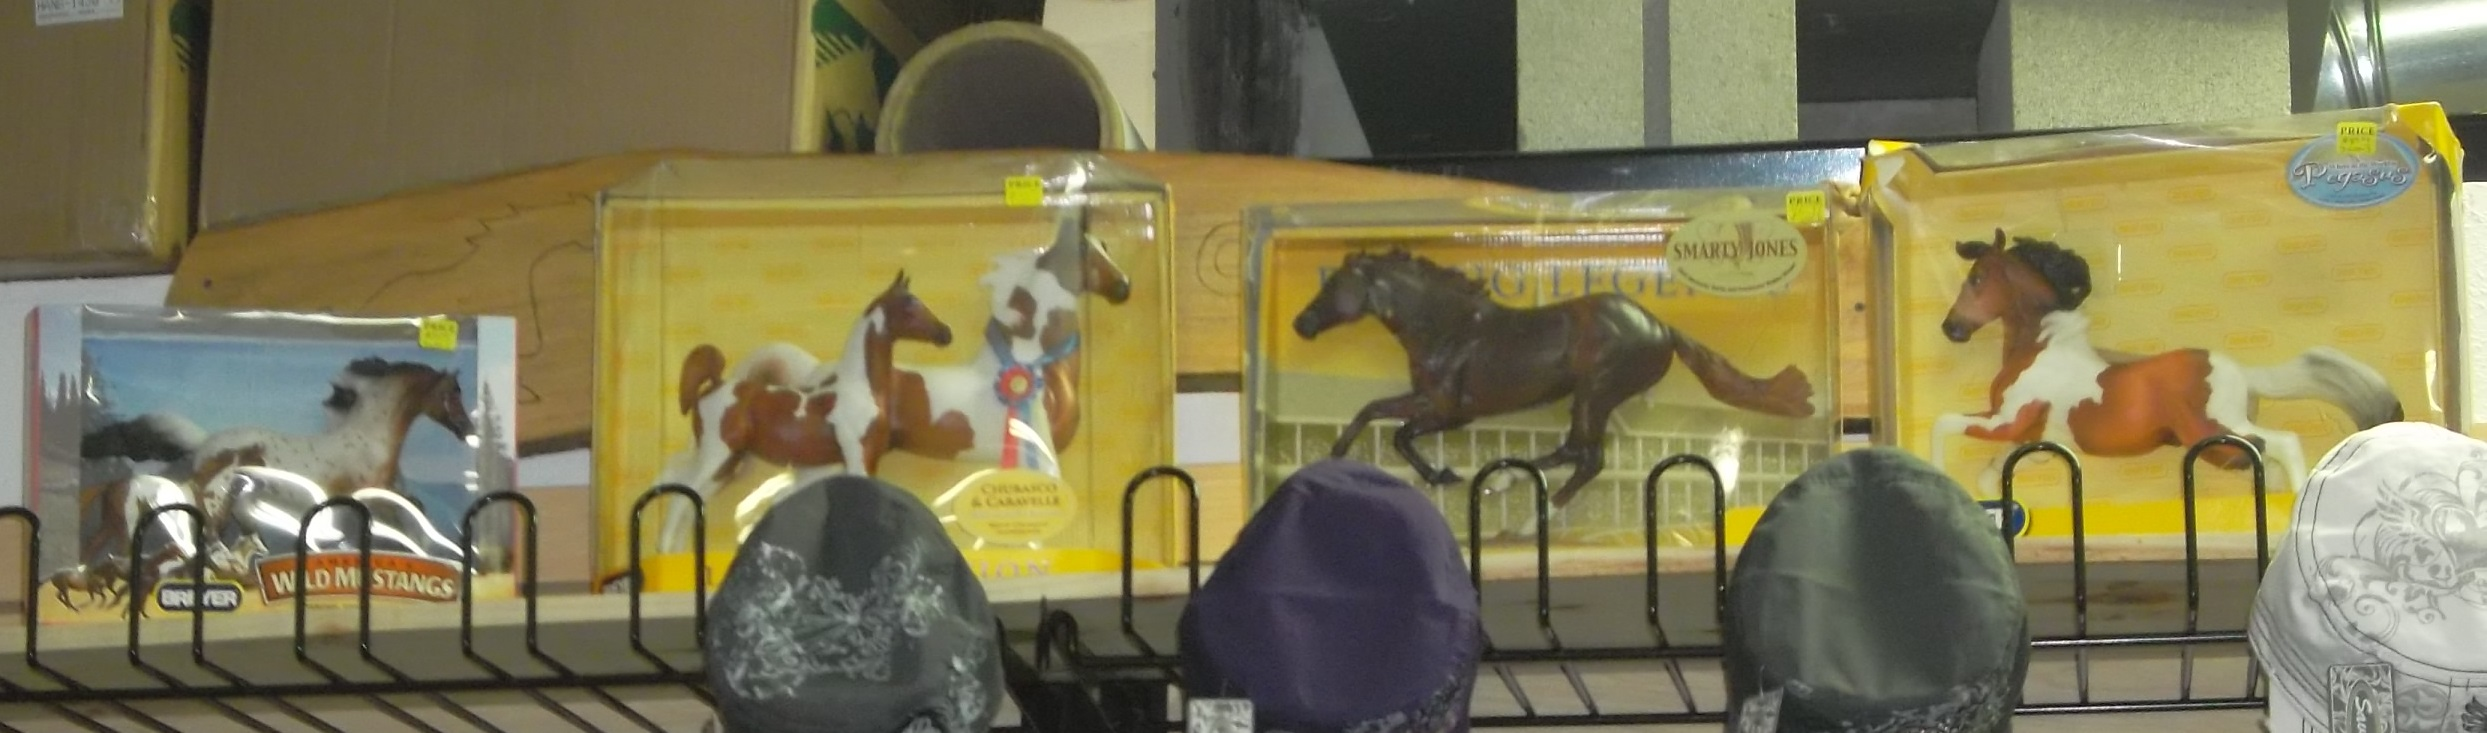 Christmas Gift Ideas Breyer Horses The Horse With The Dragonfly On Her Nose Country Cross Magnets Bling Belts And Crazy Animals Saddleupcolorado